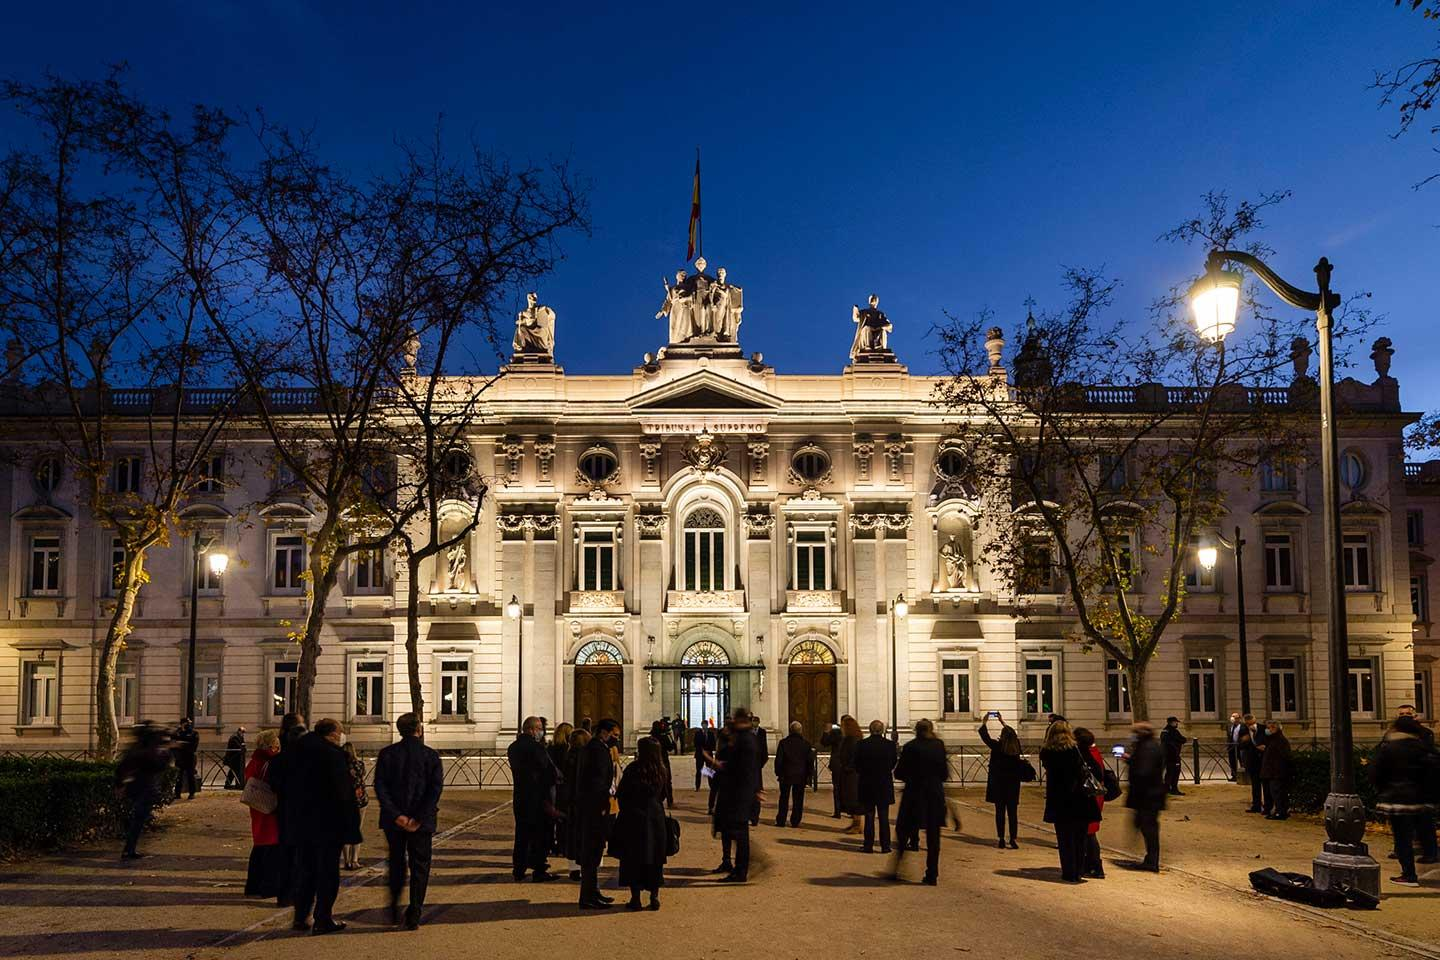 SCULP floodlights illuminate Supreme Courthouse in Madrid revealing intricate architectural details by night so passer-bys can admire